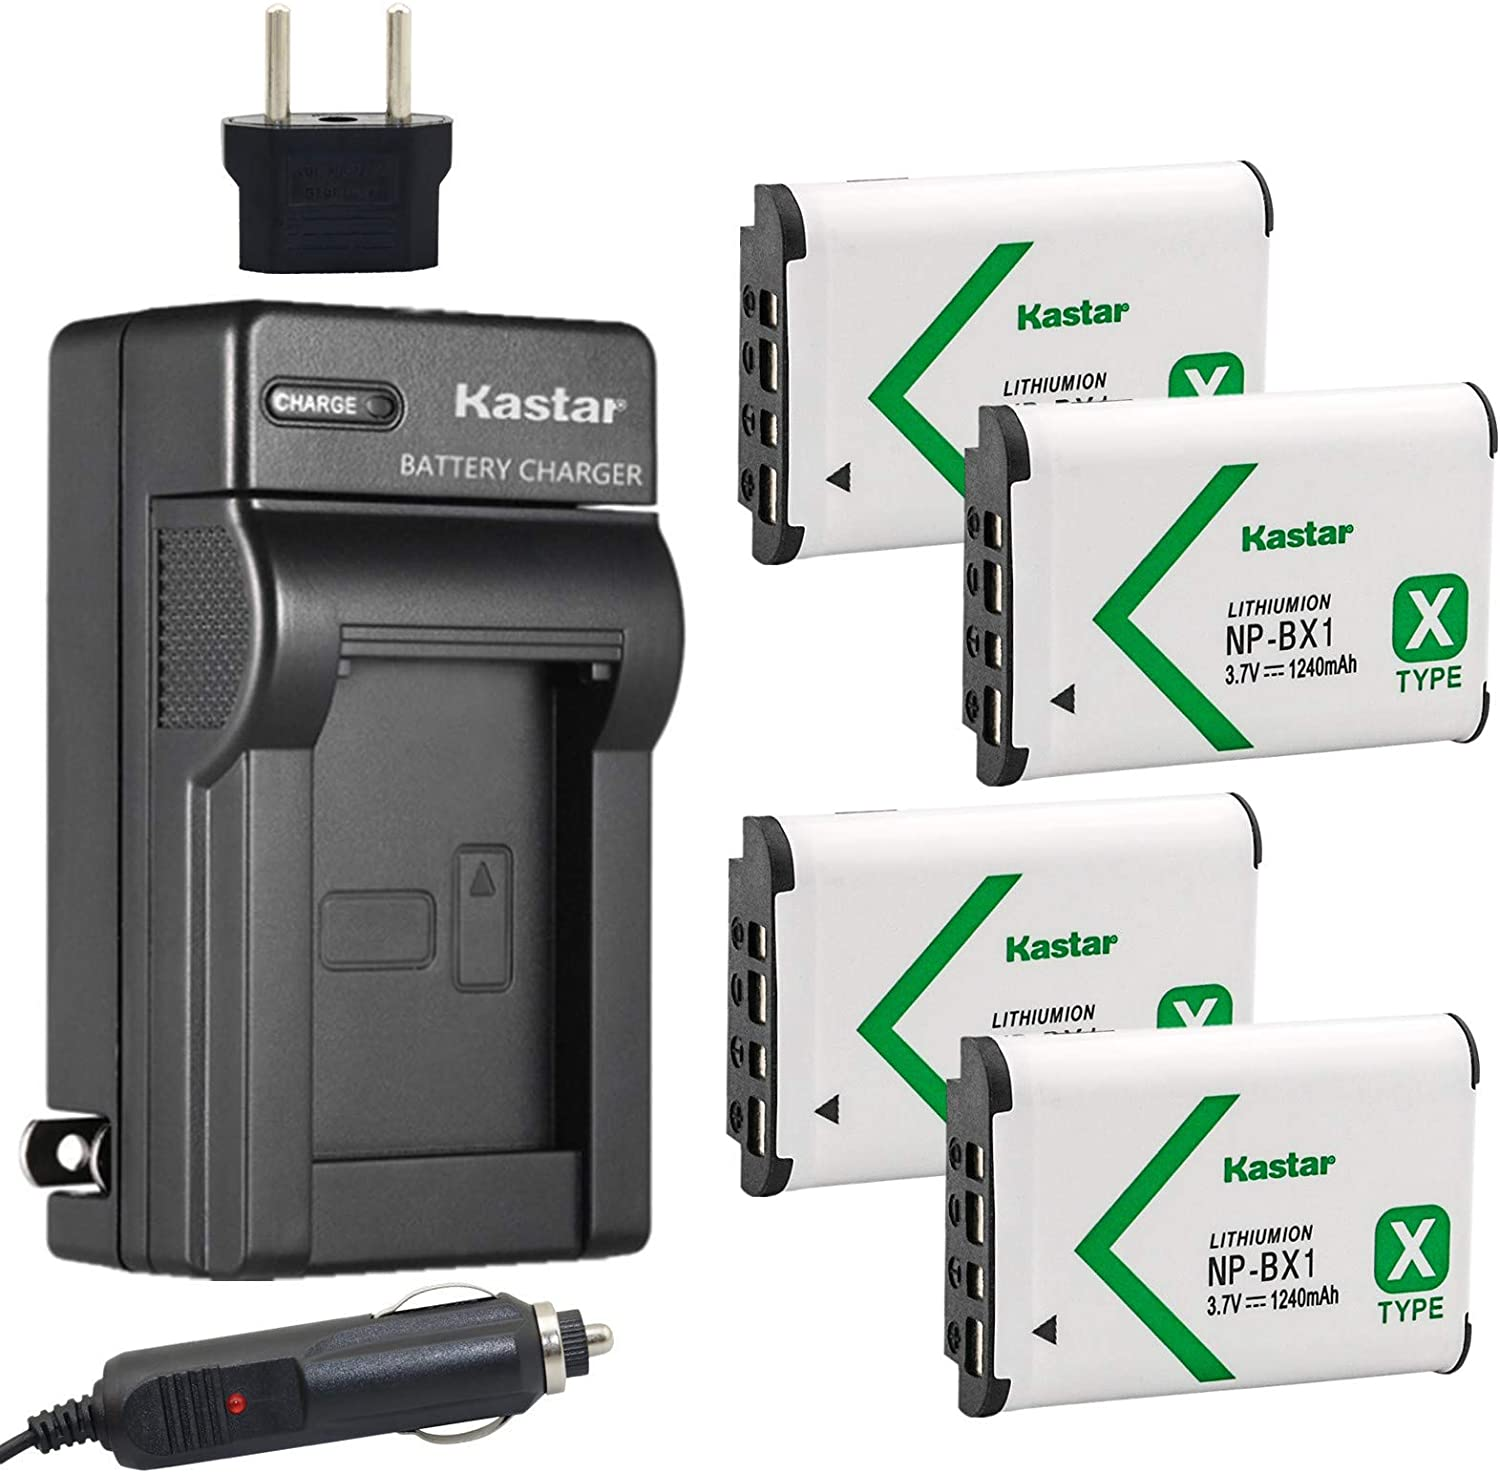 Kastar Battery 4-Pack and Charger Replacement Albuquerque Mall Sale special price for NP-BX1 Sony M